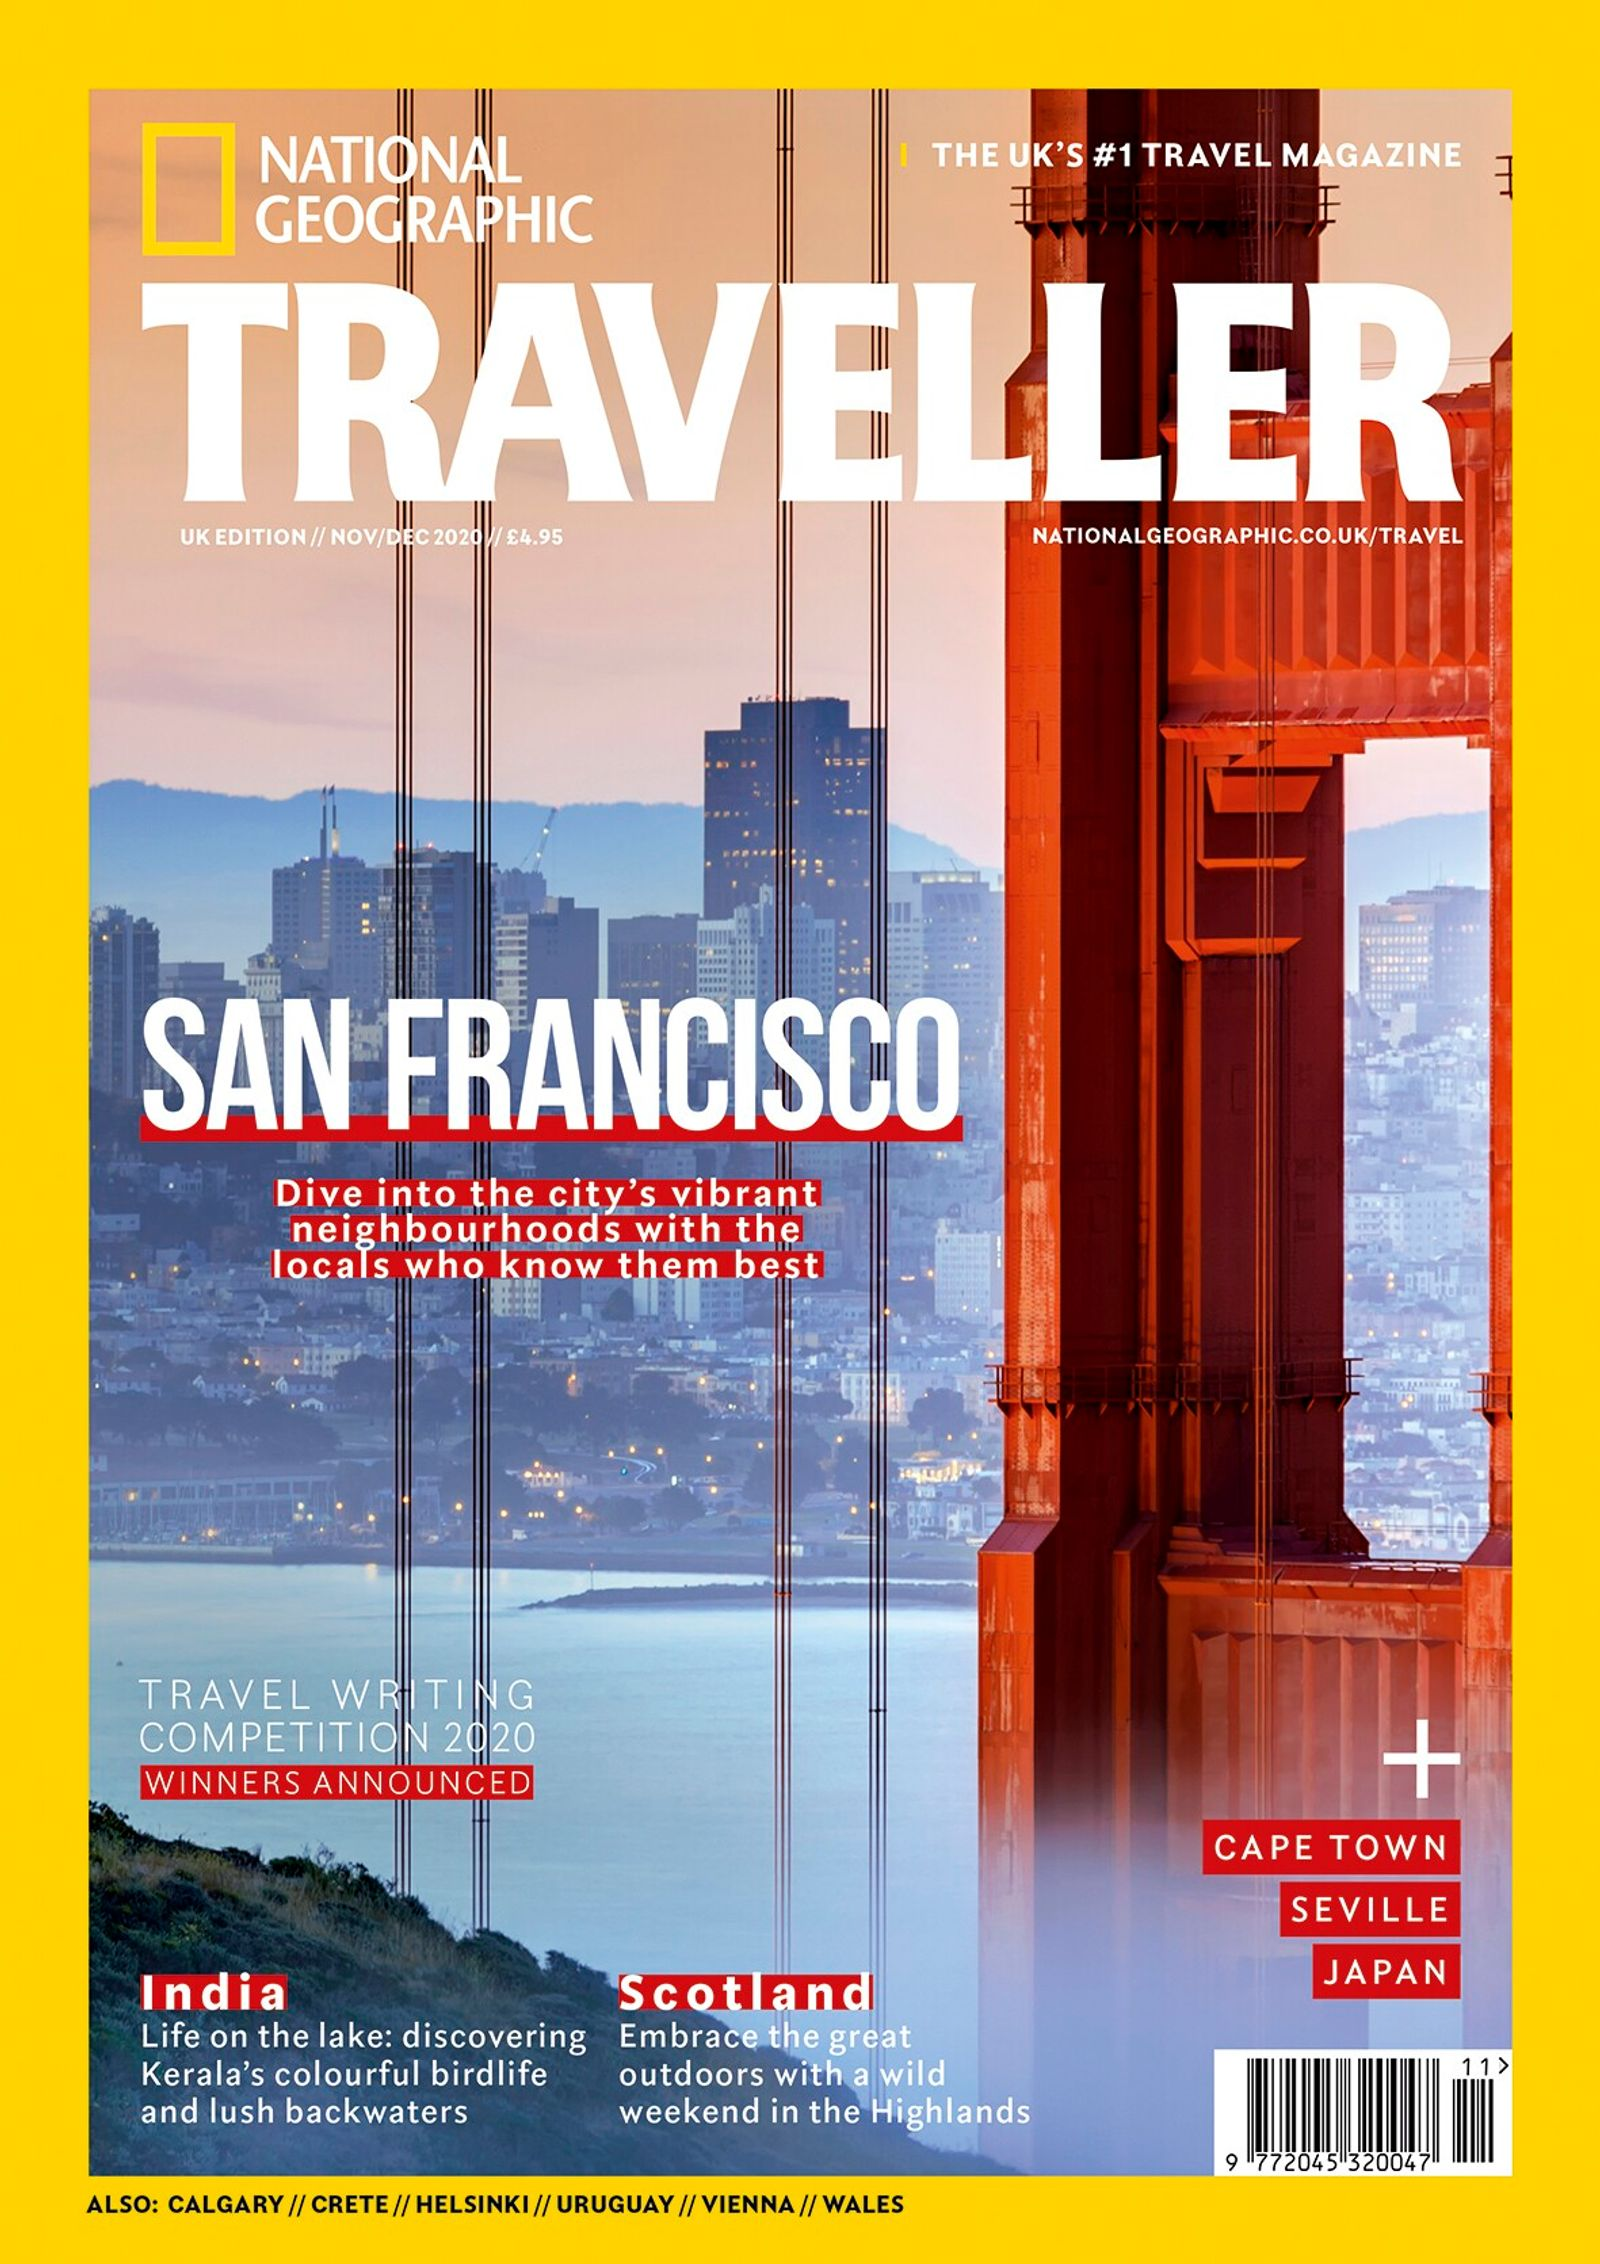 The Nov/Dec 2020 issue of National Geographic Traveller (UK)